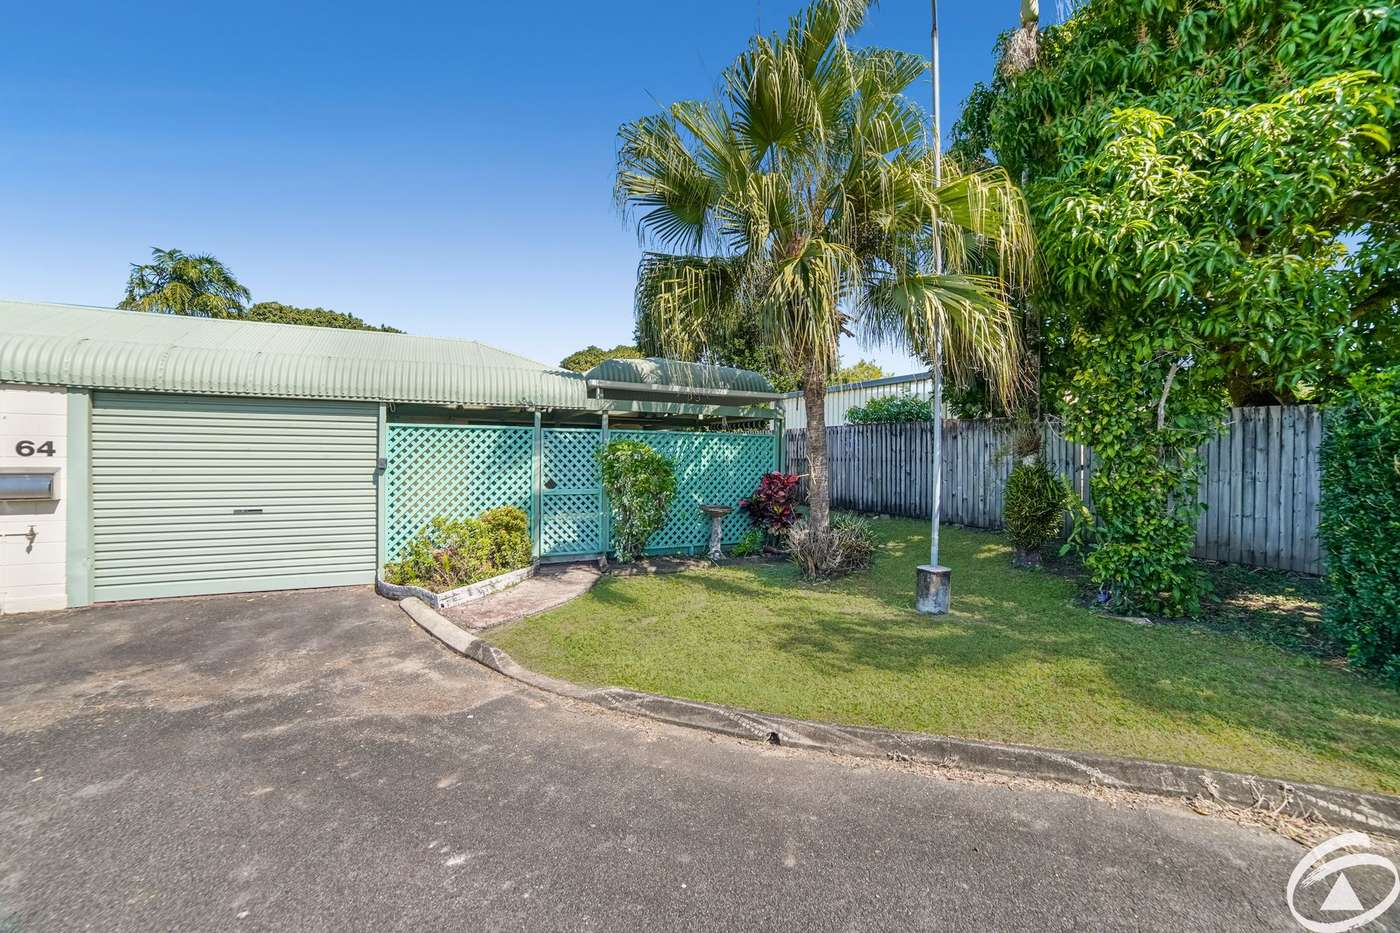 Main view of Homely unit listing, 64/91 Hoare Street, Manunda, QLD 4870